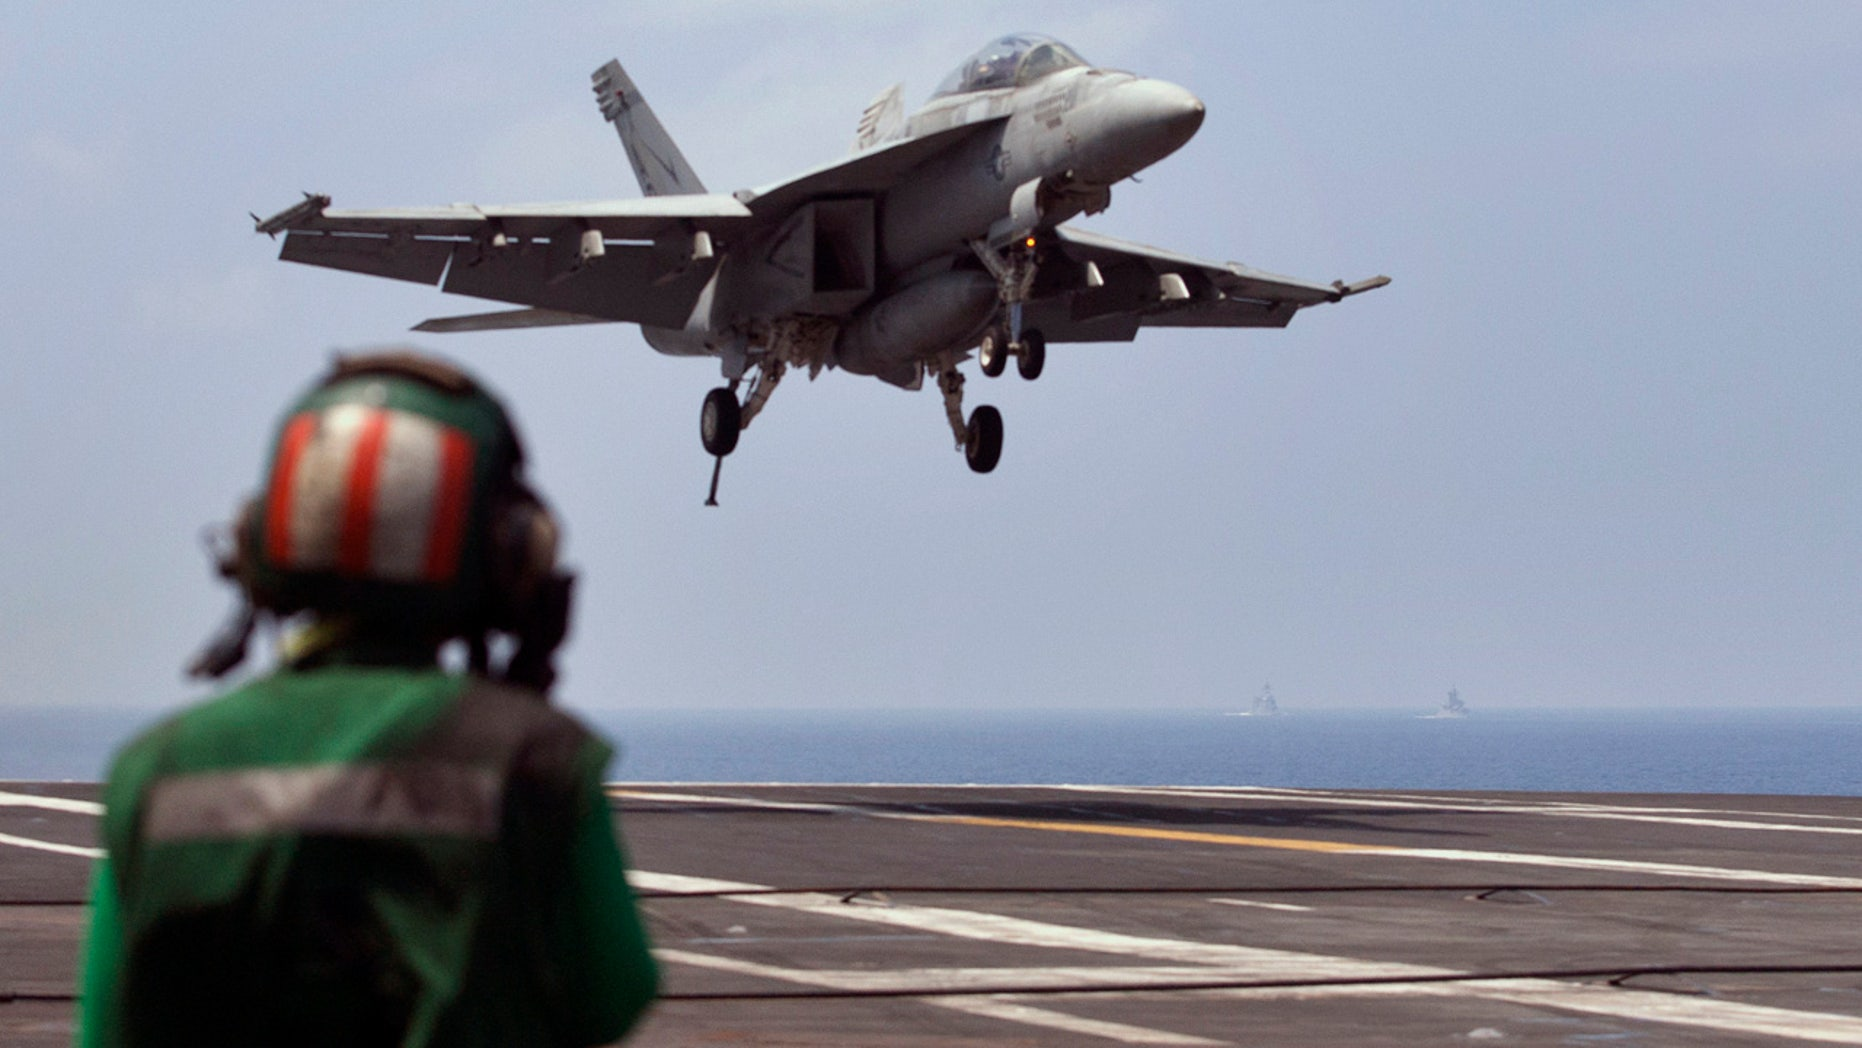 FILE - This Oct. 17, 2015 file photo shows a U.S. Navy fighter jet approaching to land on the U.S. Navy aircraft carrier USS Theodore Roosevelt during Exercise Malabar 2015 about 150 miles off Chennai, India. (AP Photo/Arun Sankar K., File)